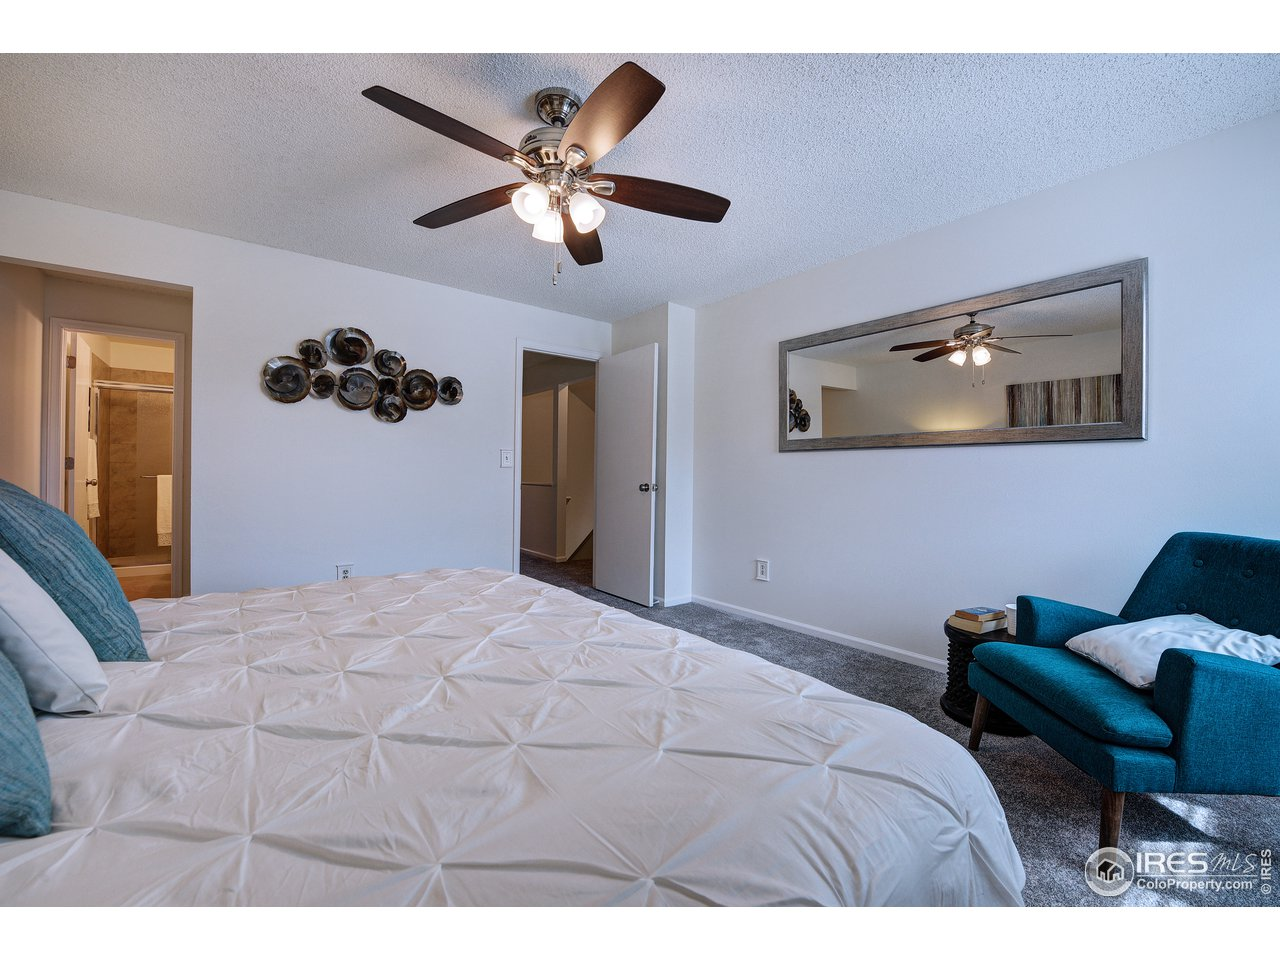 Nice ceiling fans in home